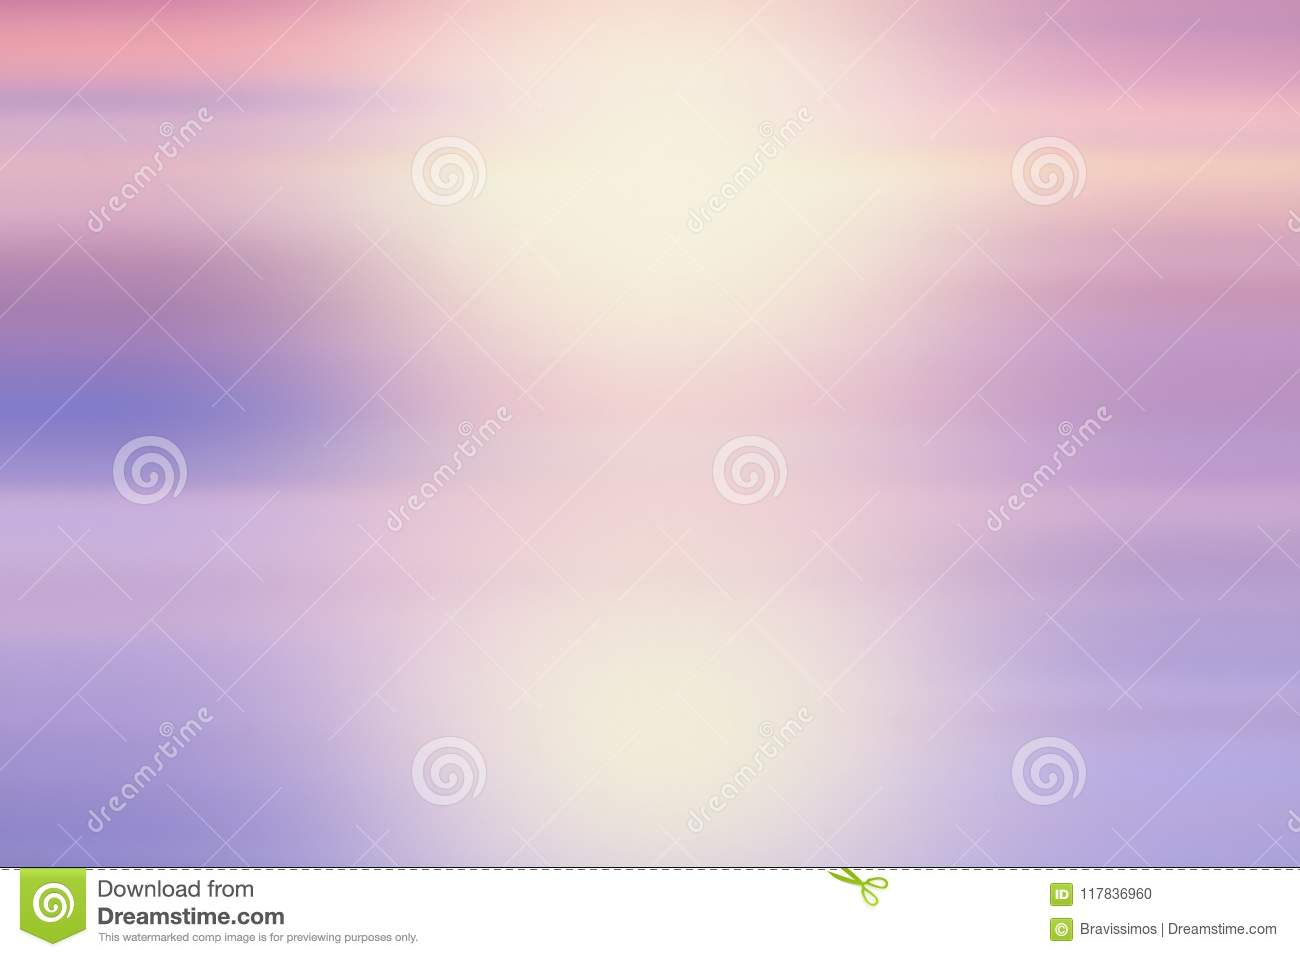 Soft Cloud Background With A Pastel Colored Orange To Blue